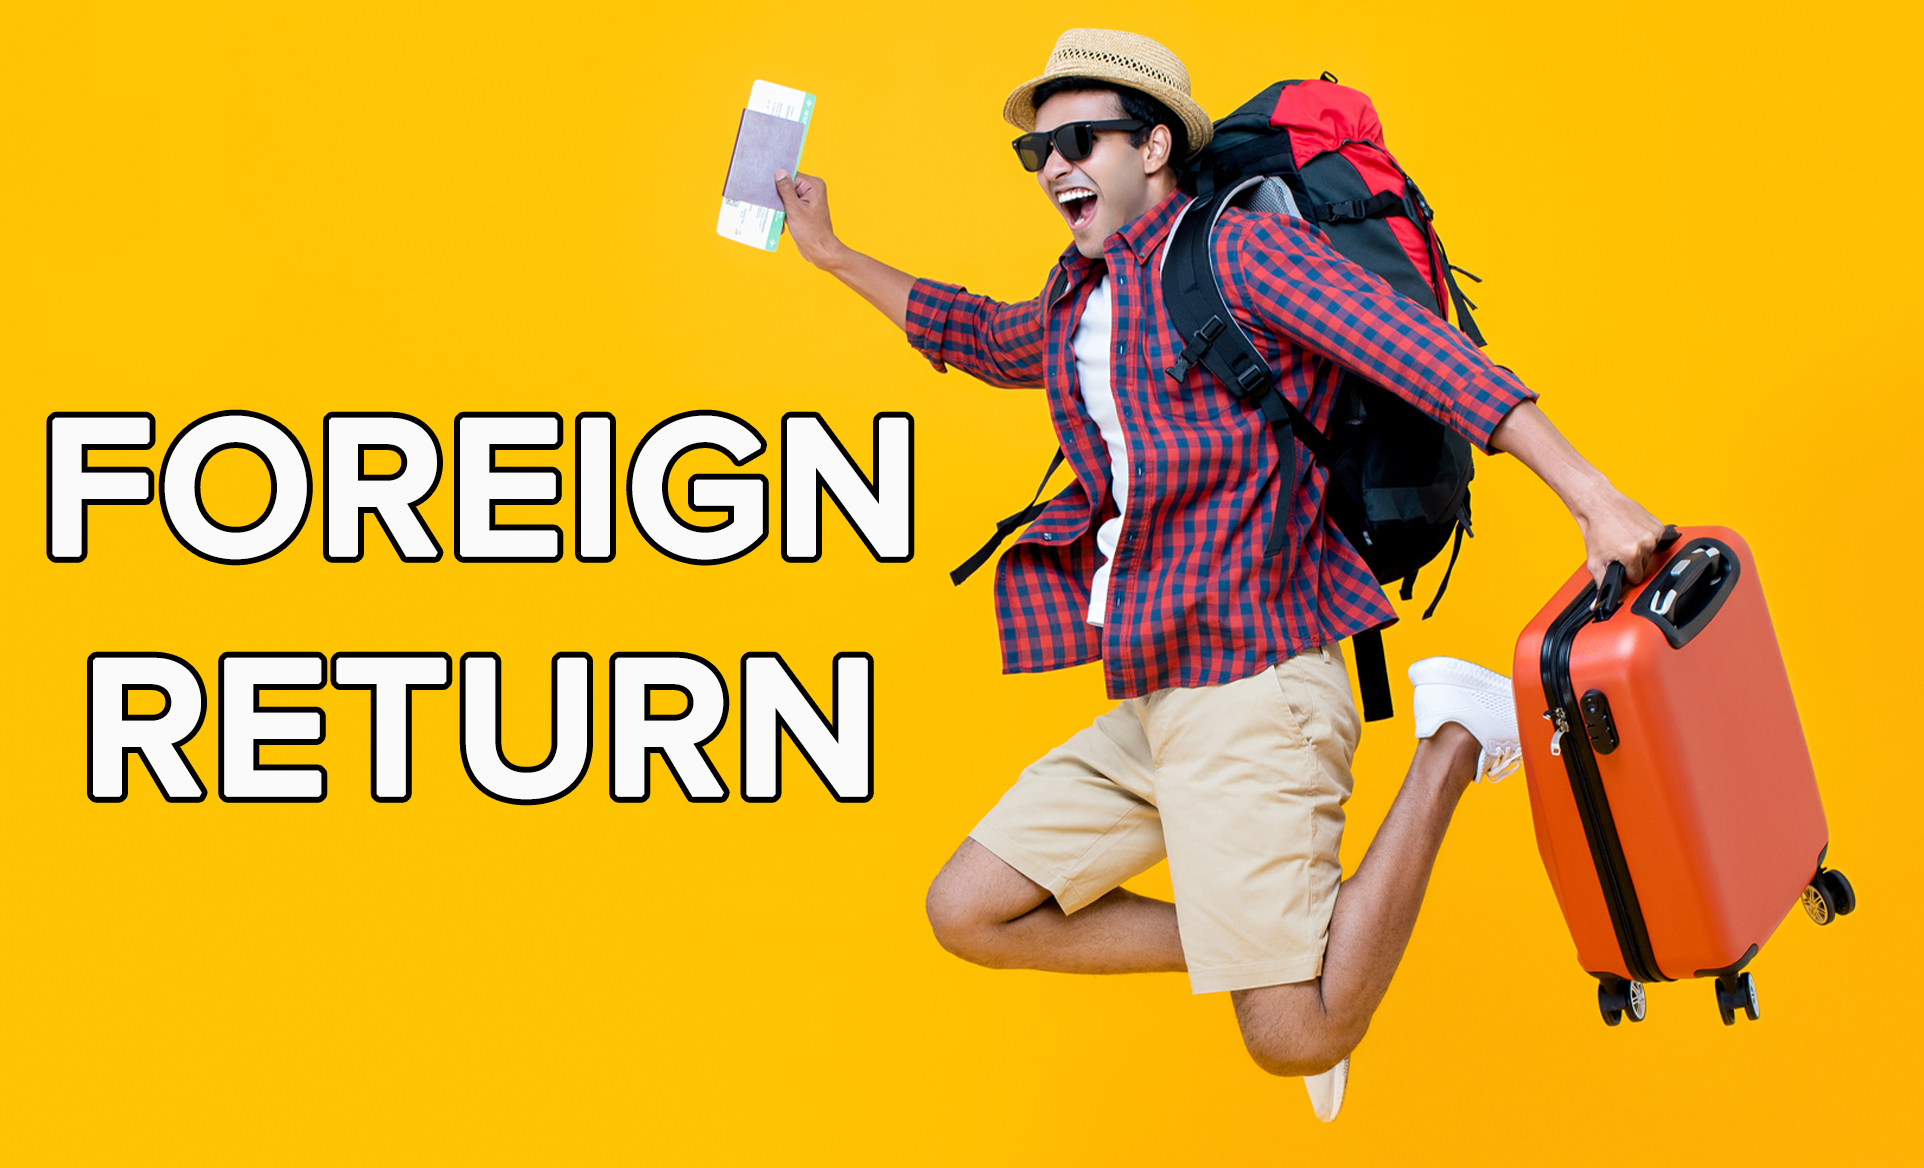 A man excitedly jumps while holding on to his suitcase and airplane ticket